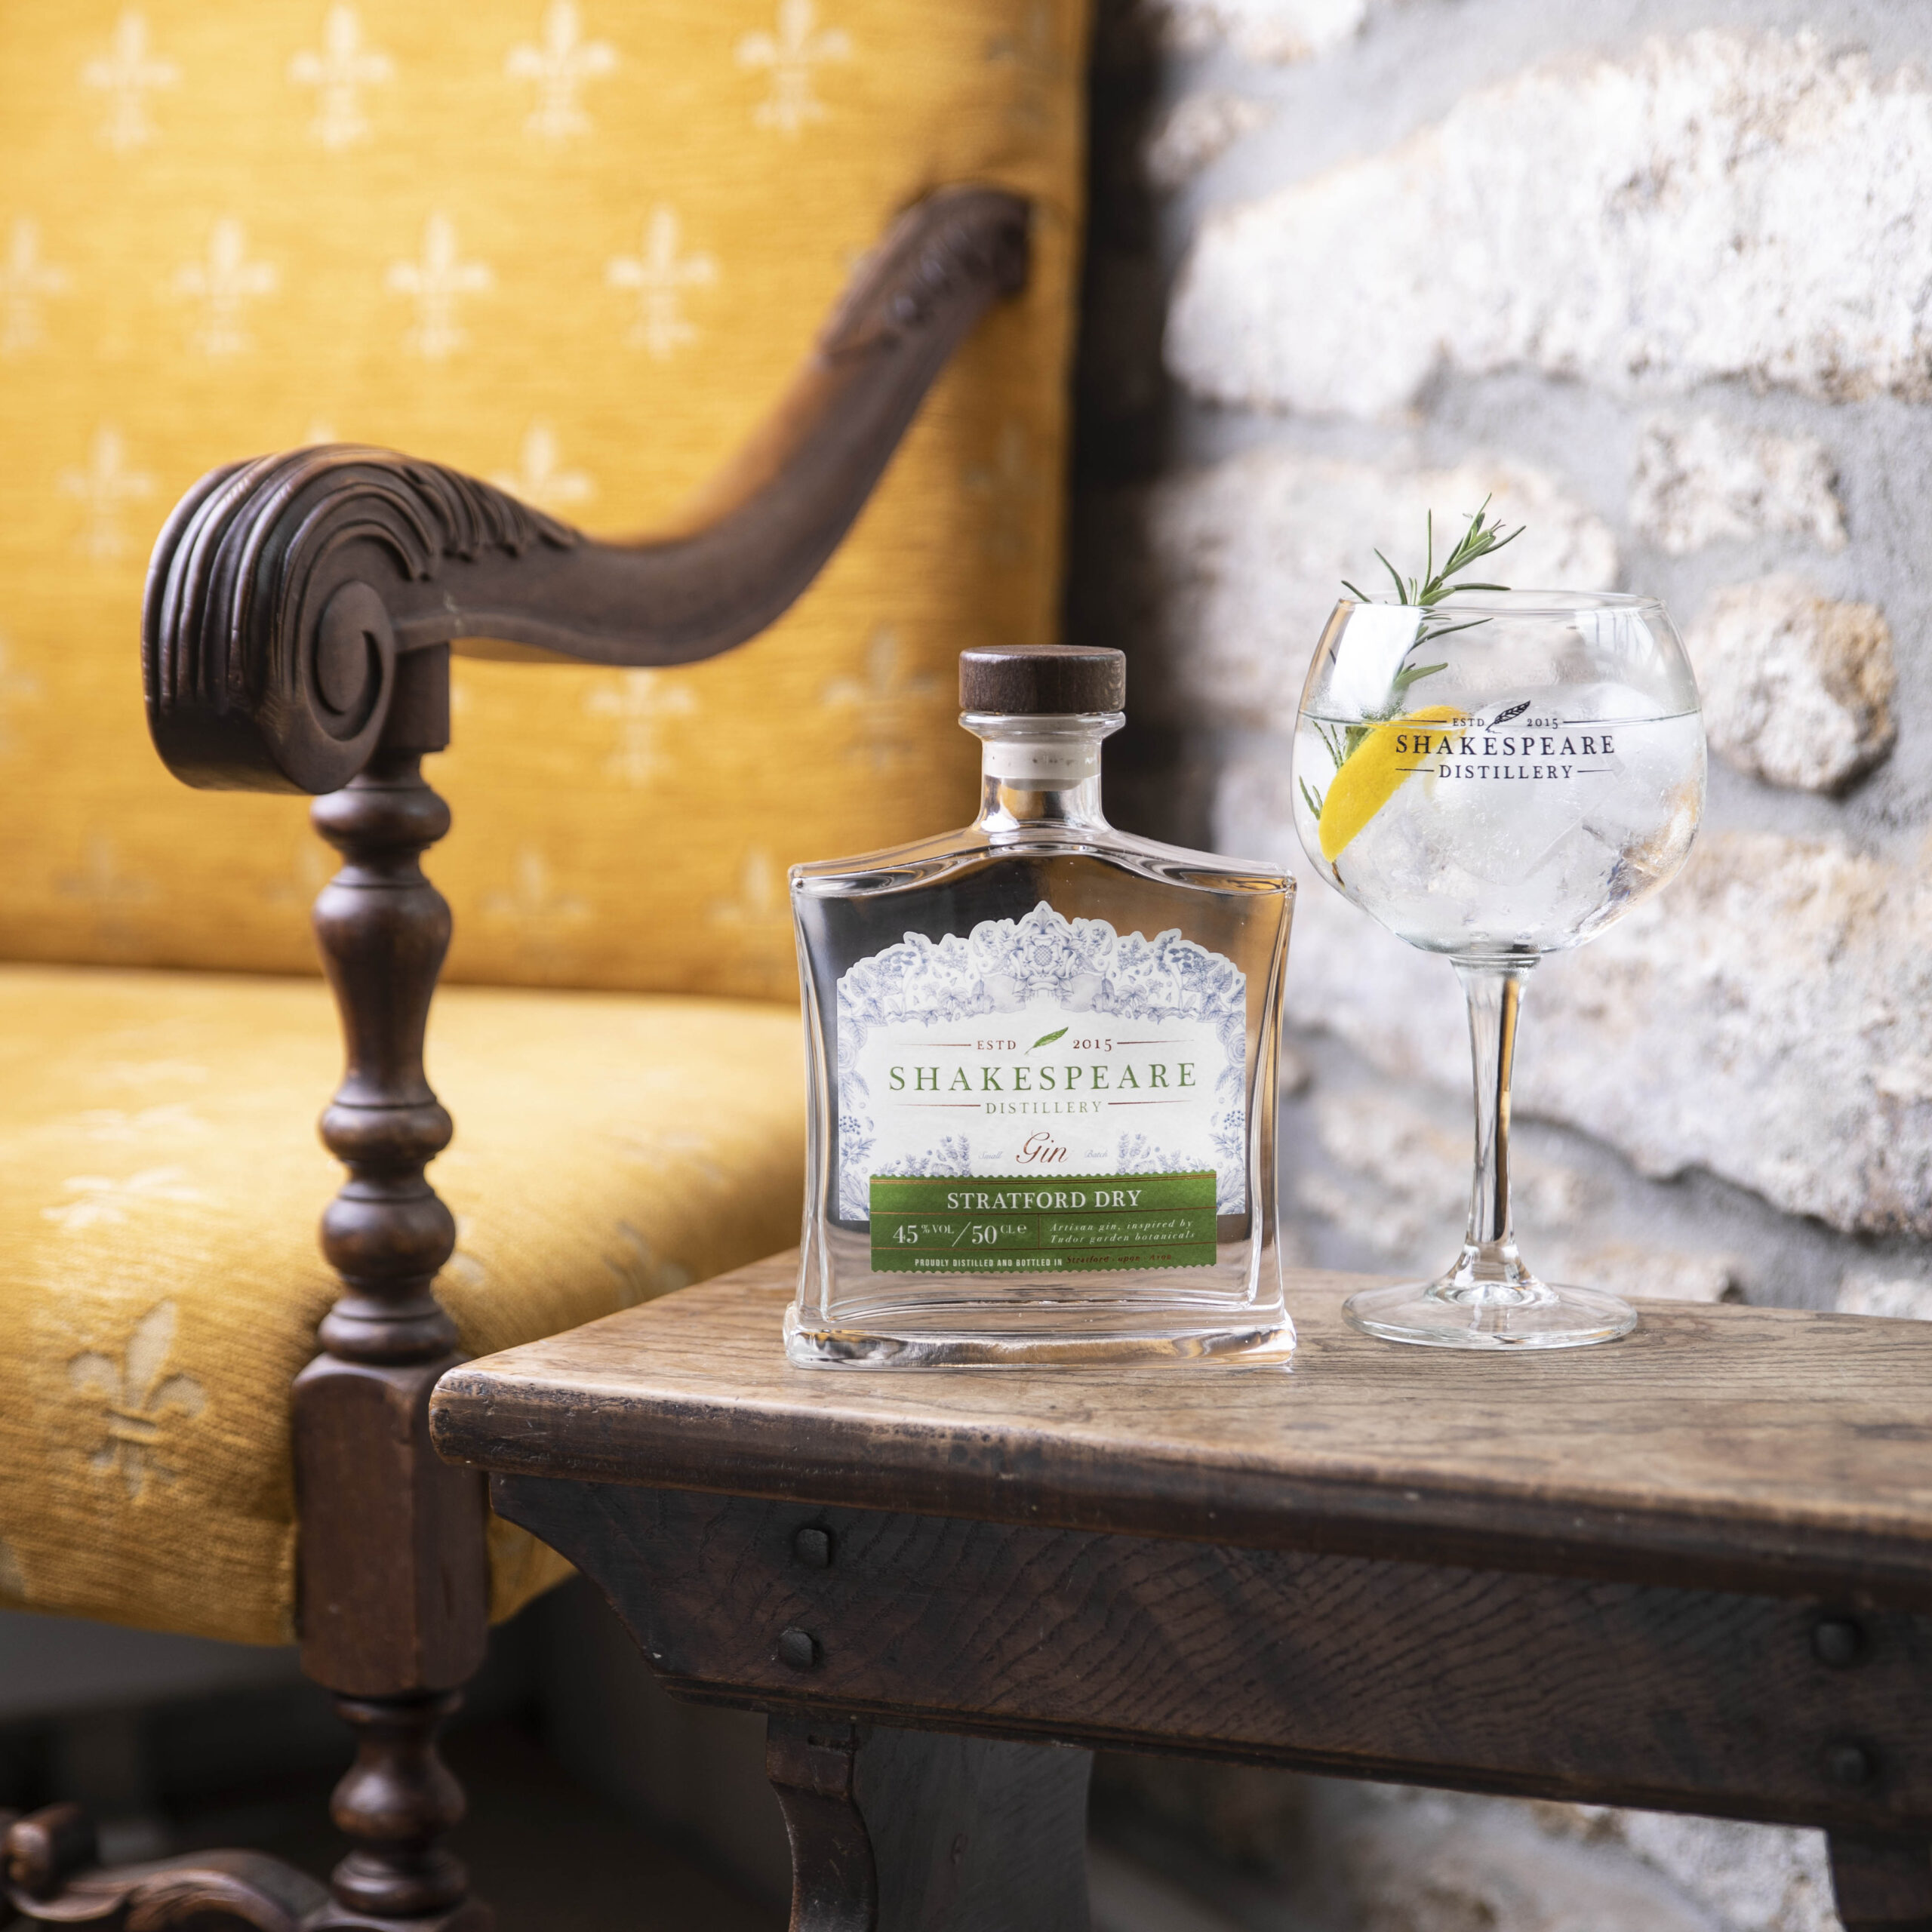 a bottle of stratford dry gin next to a glass